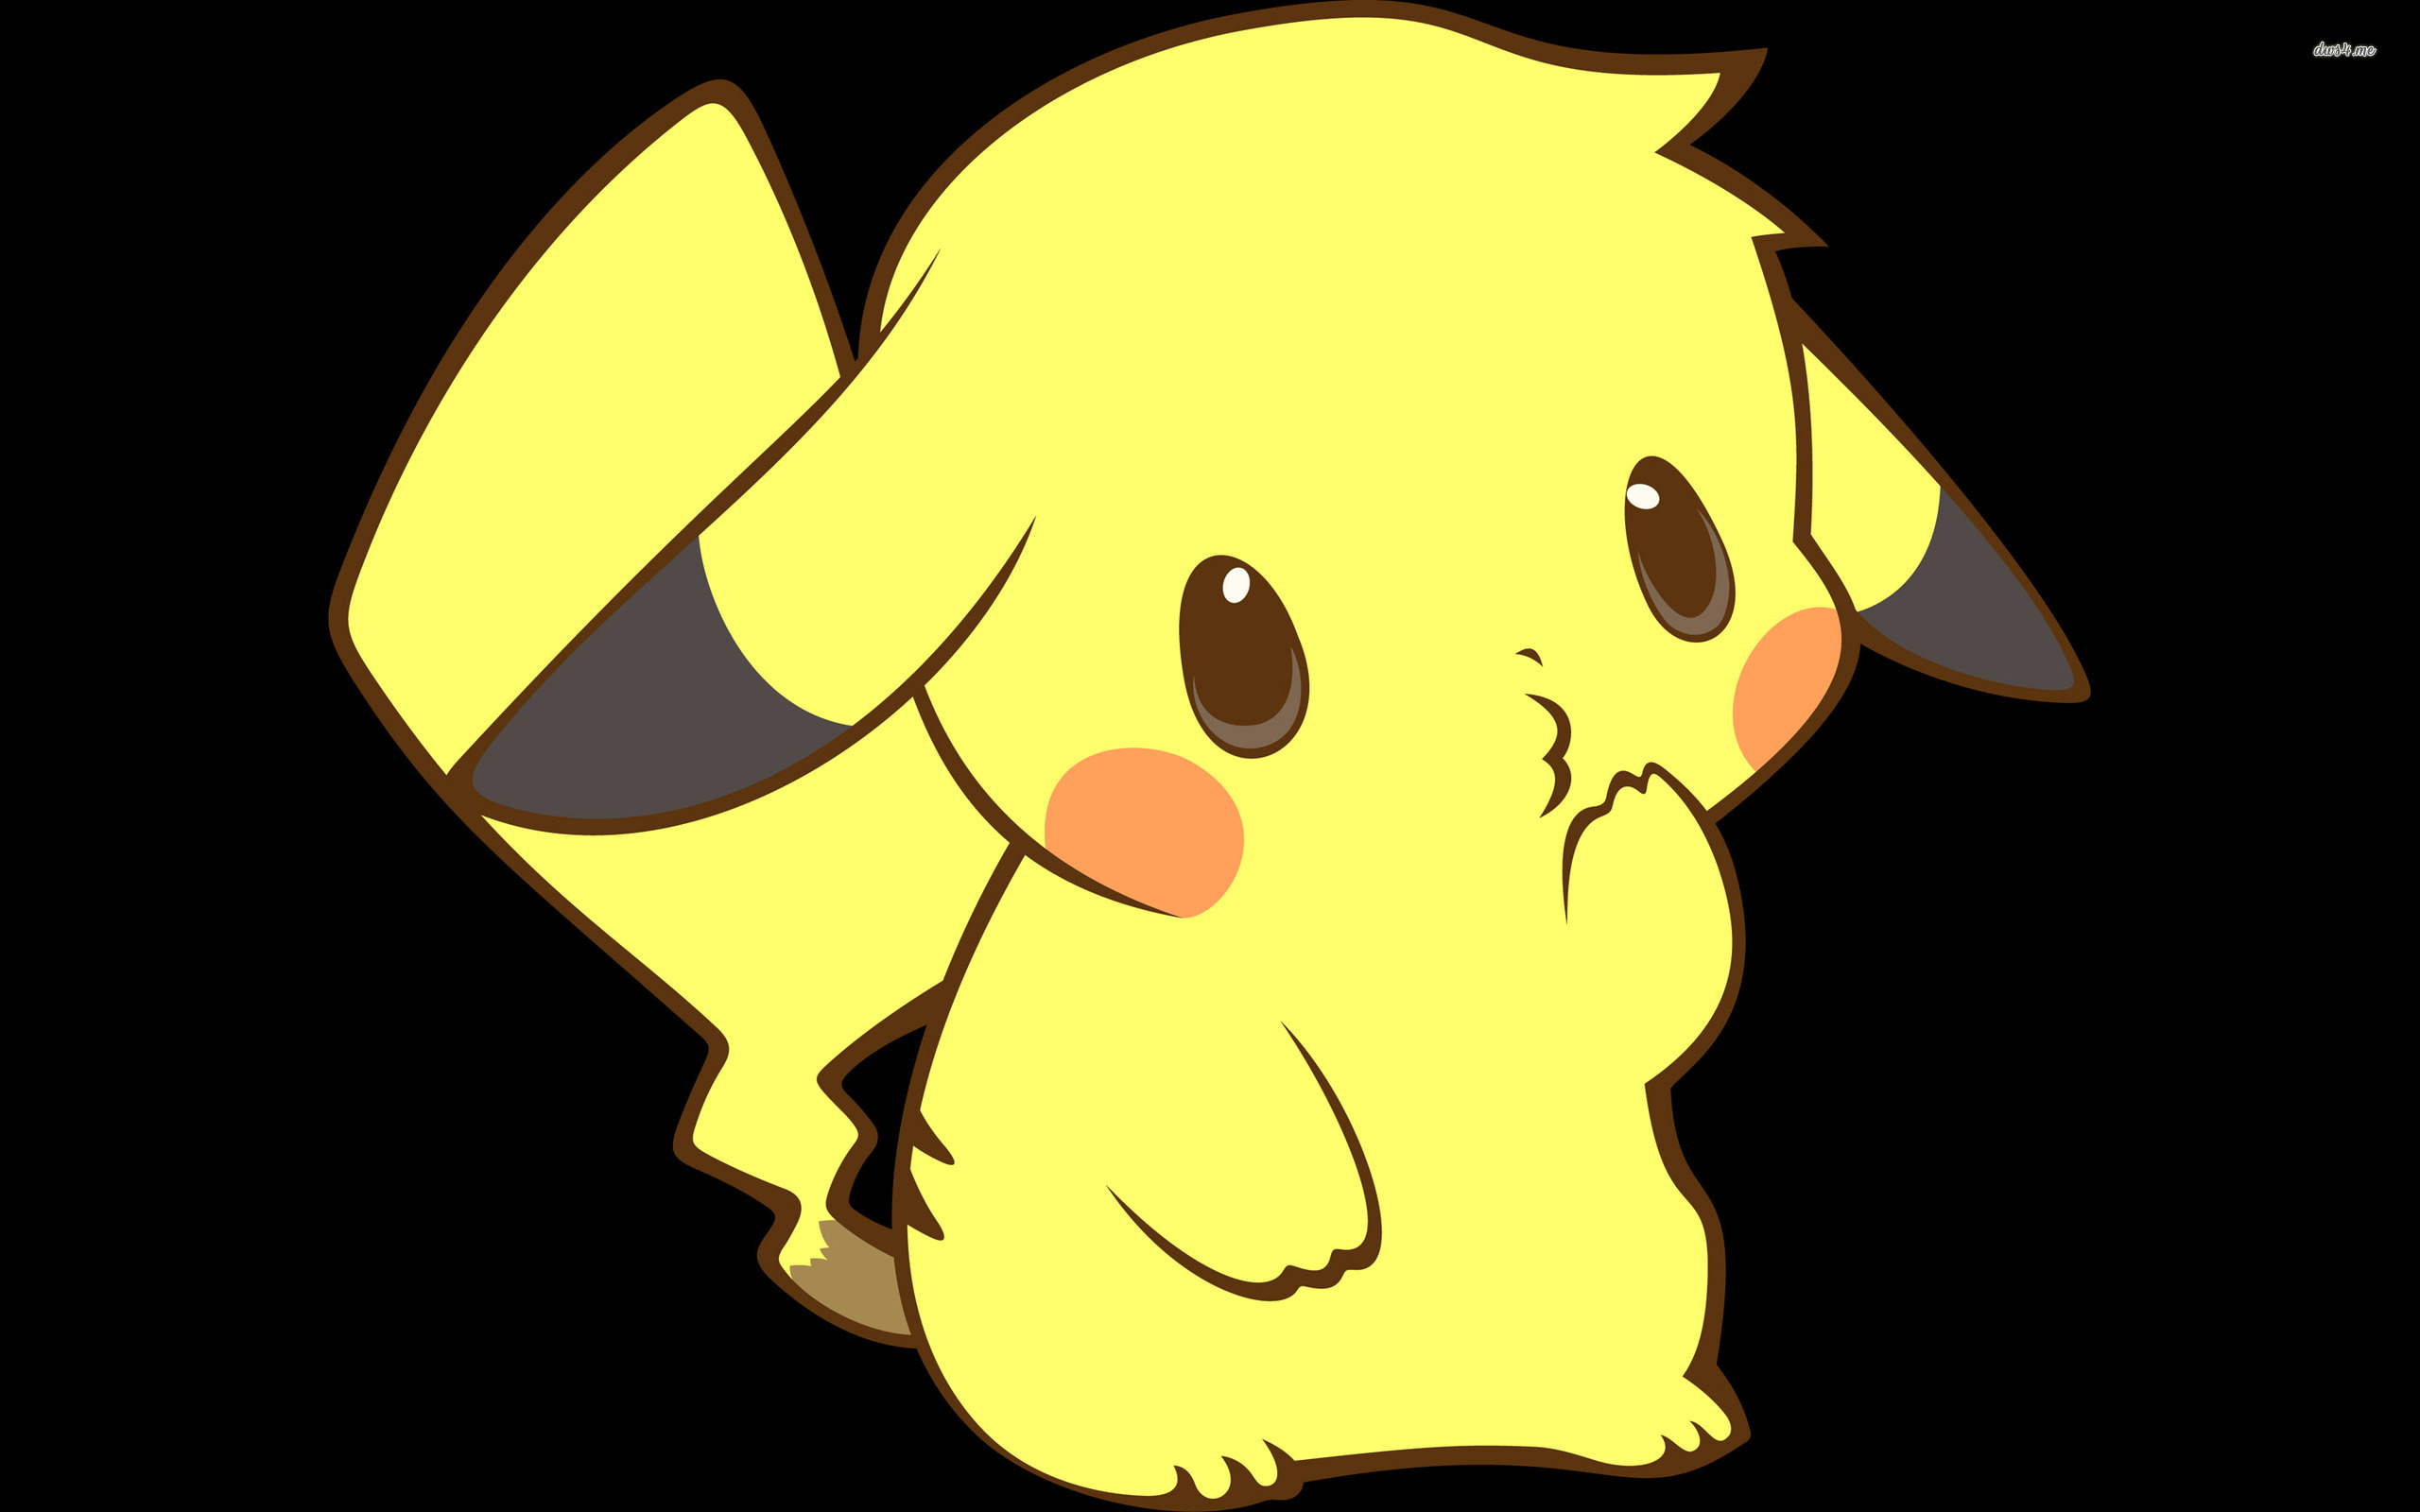 Pokemon new hd wallpapers high definition all hd wallpapers - Images de pikachu ...